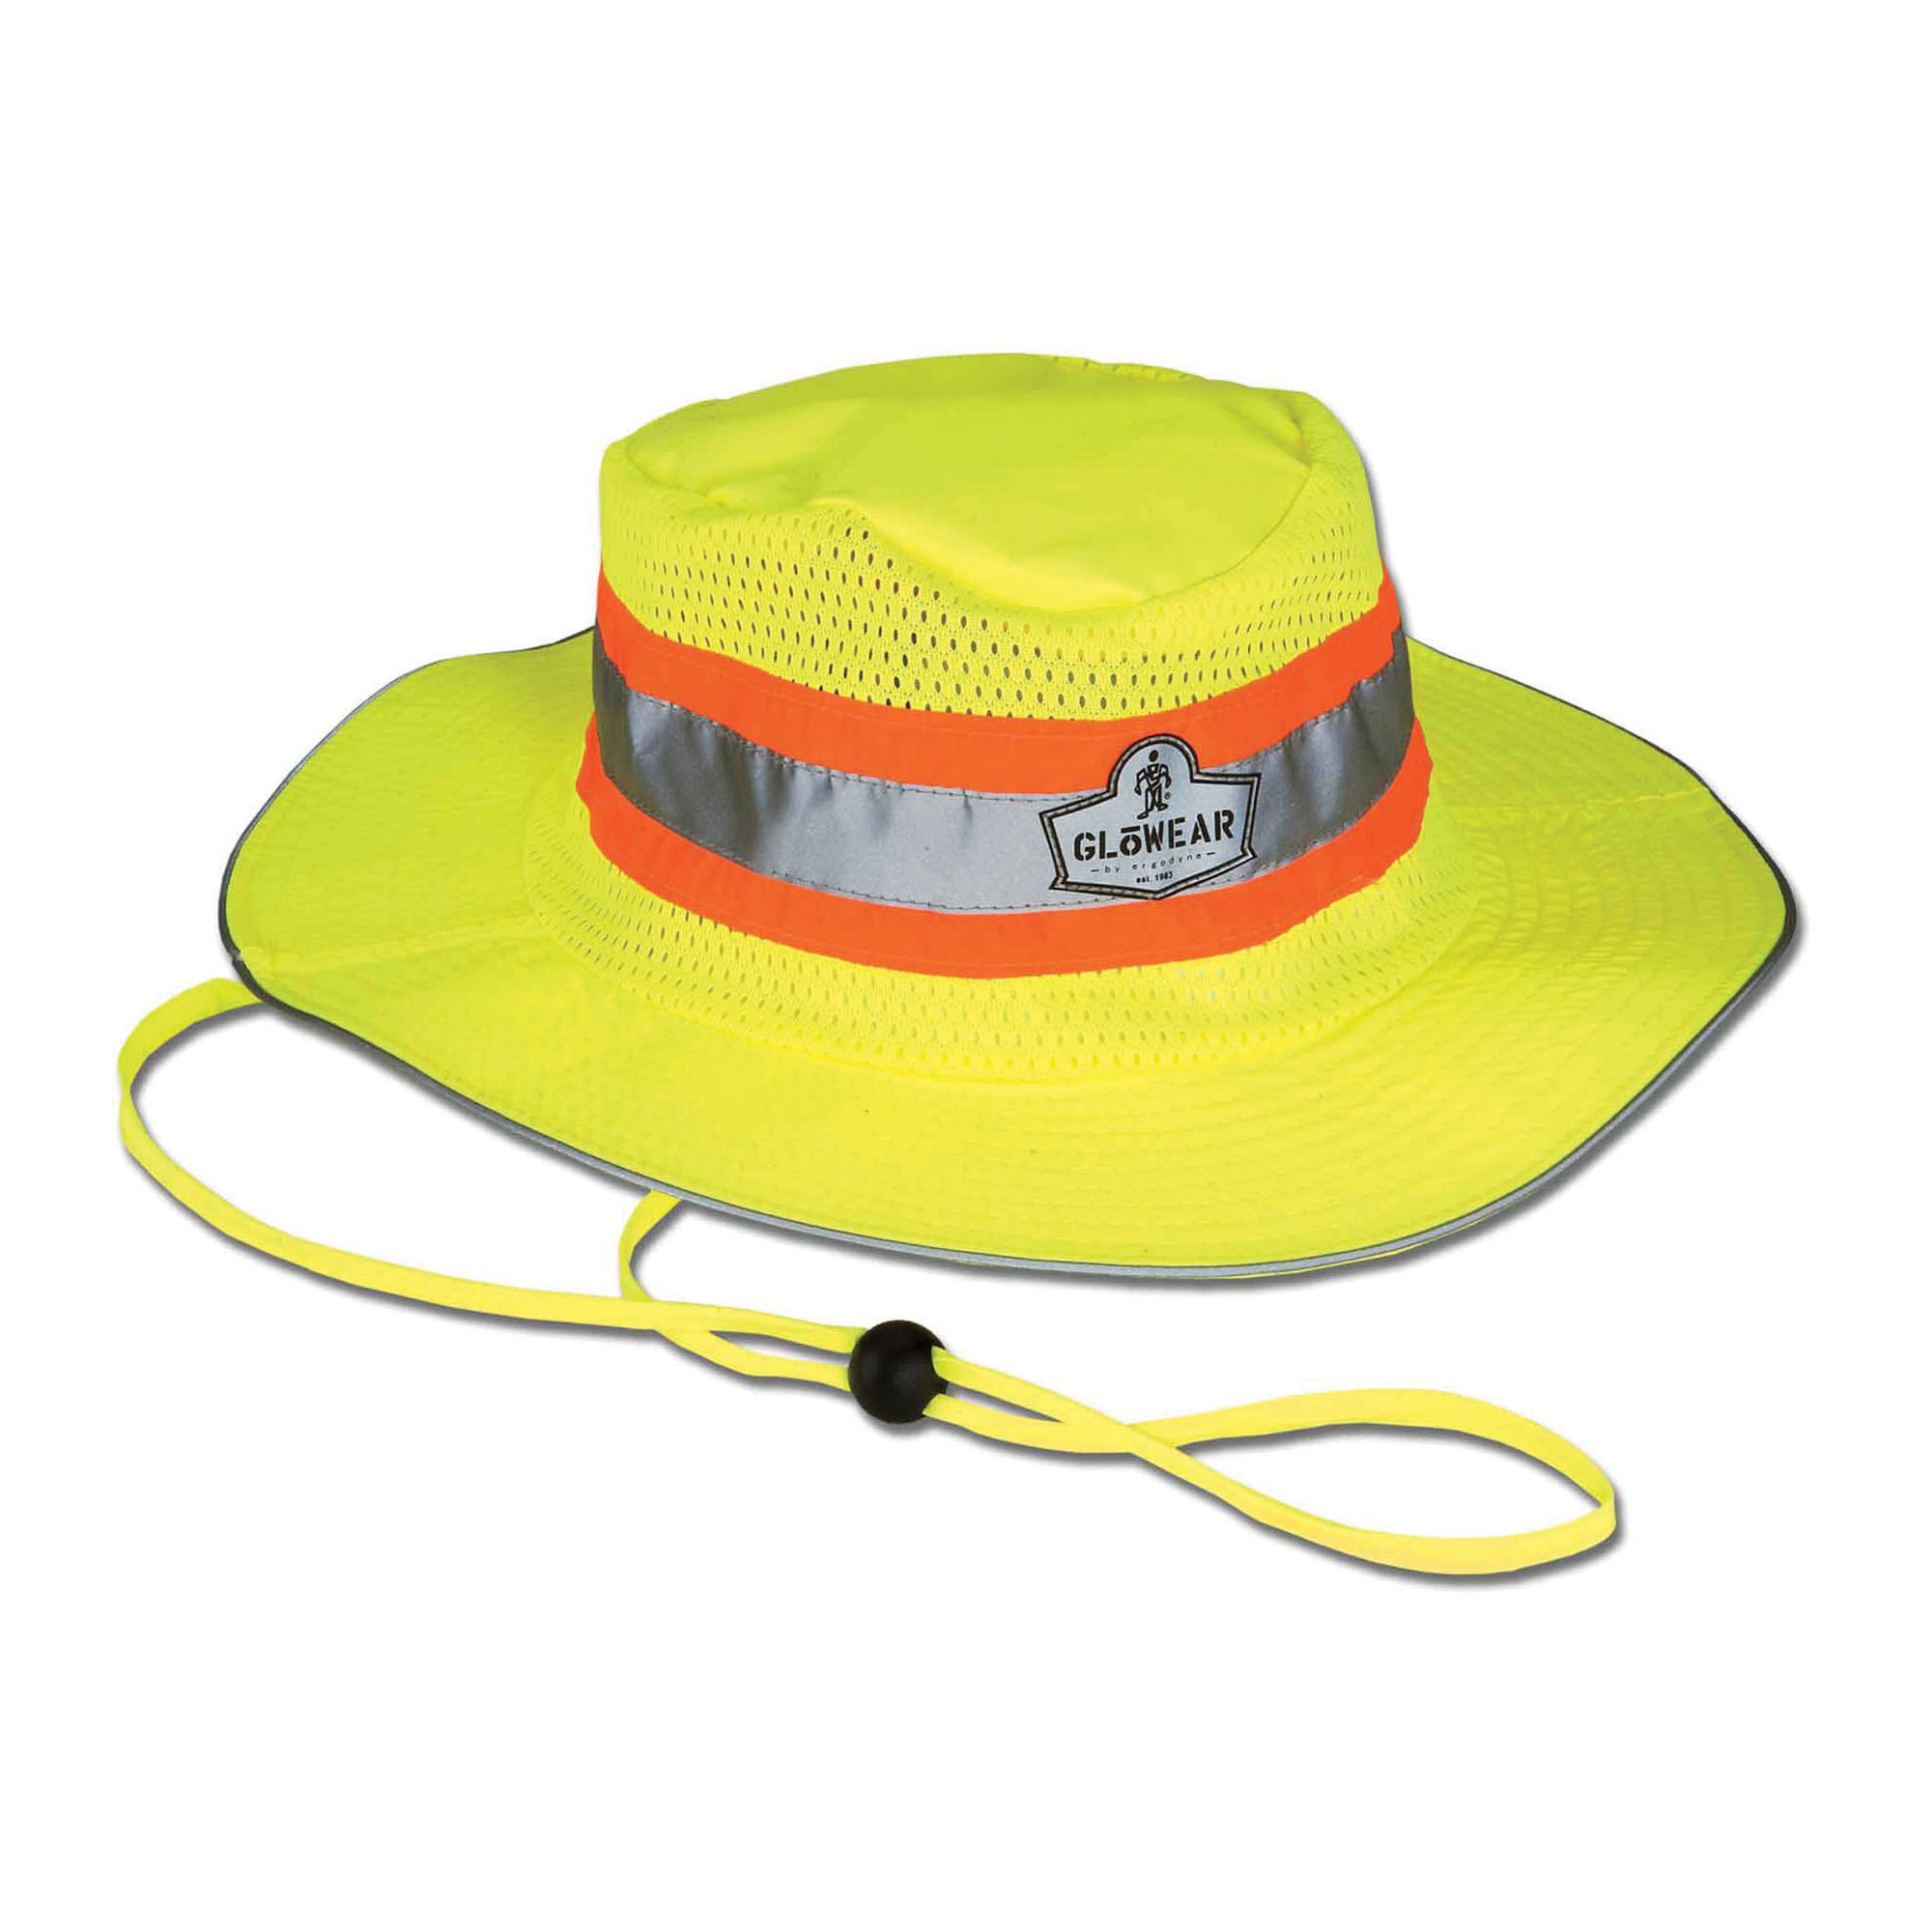 GloWear® 23259 8935 Ranger Hat, S to M, Hi-Viz Lime, 150D Oxford Polyester